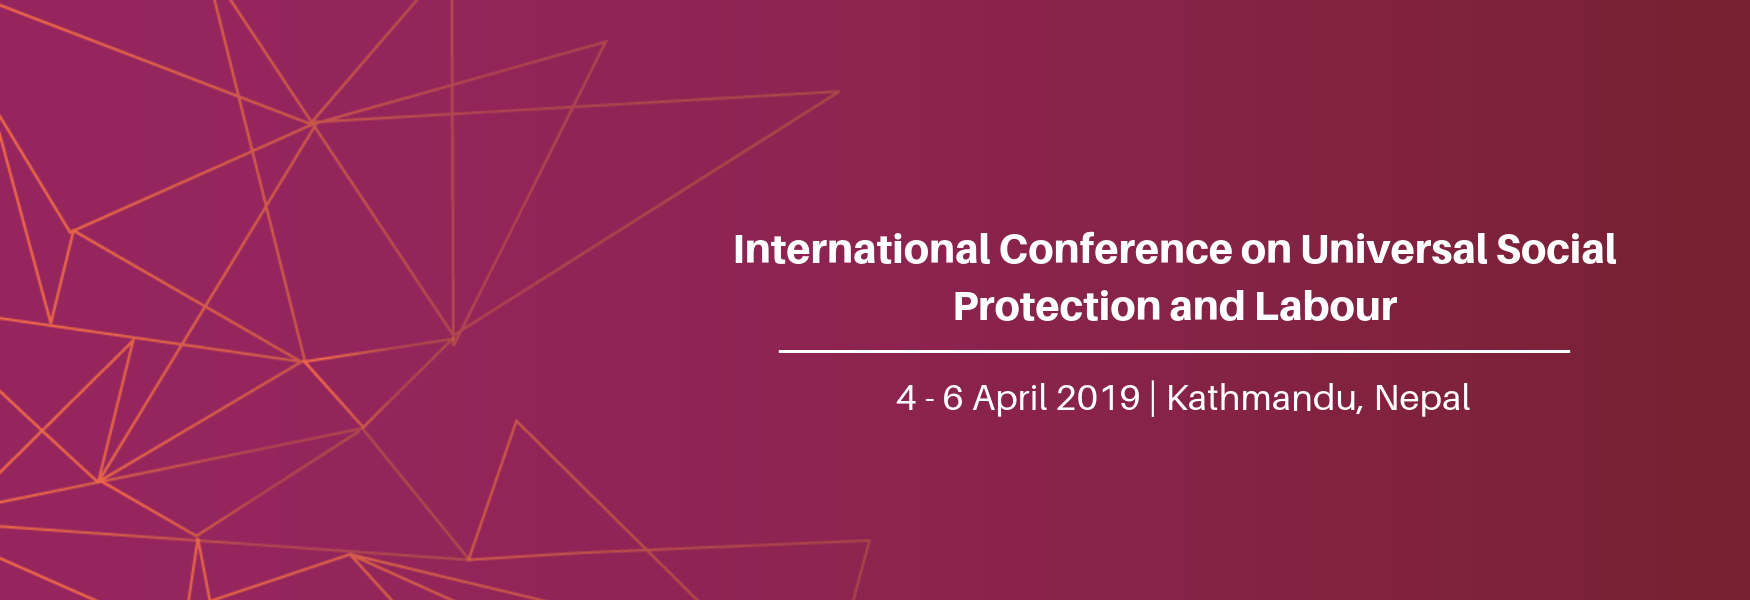 International Conference on Universal Social Protection and Labour